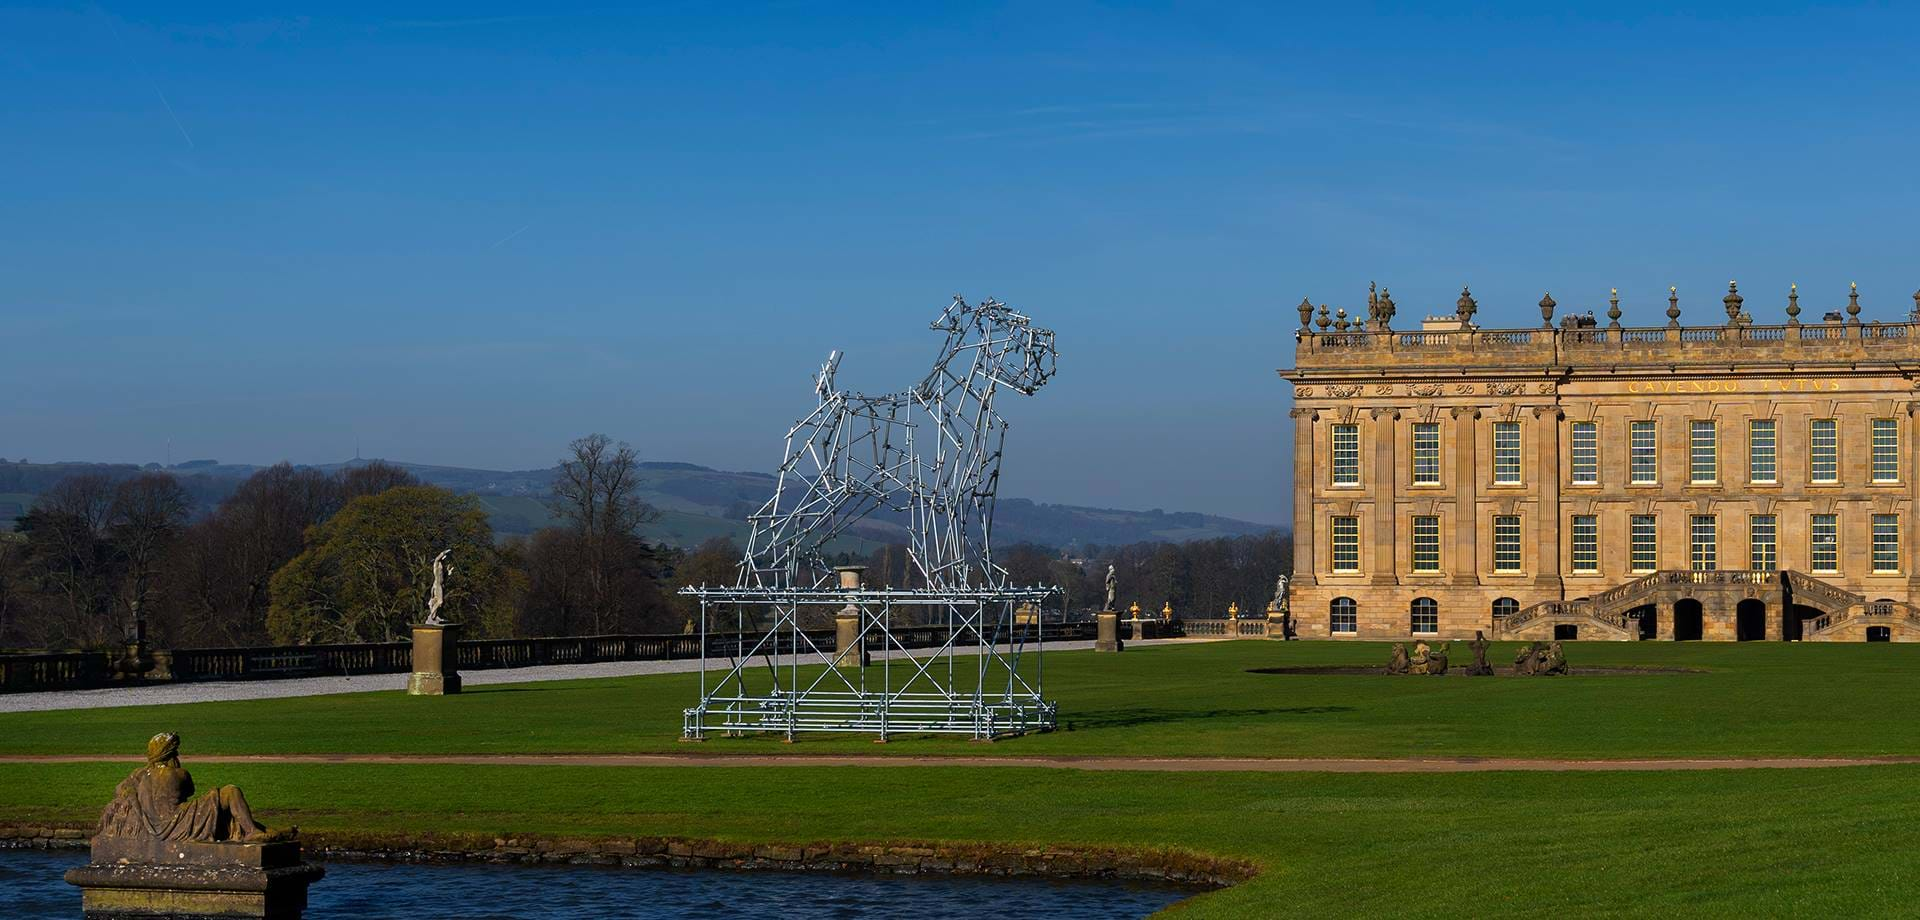 Scaffolding Dog is a Playful Addition  to the Chatsworth Garden for new Exhibition